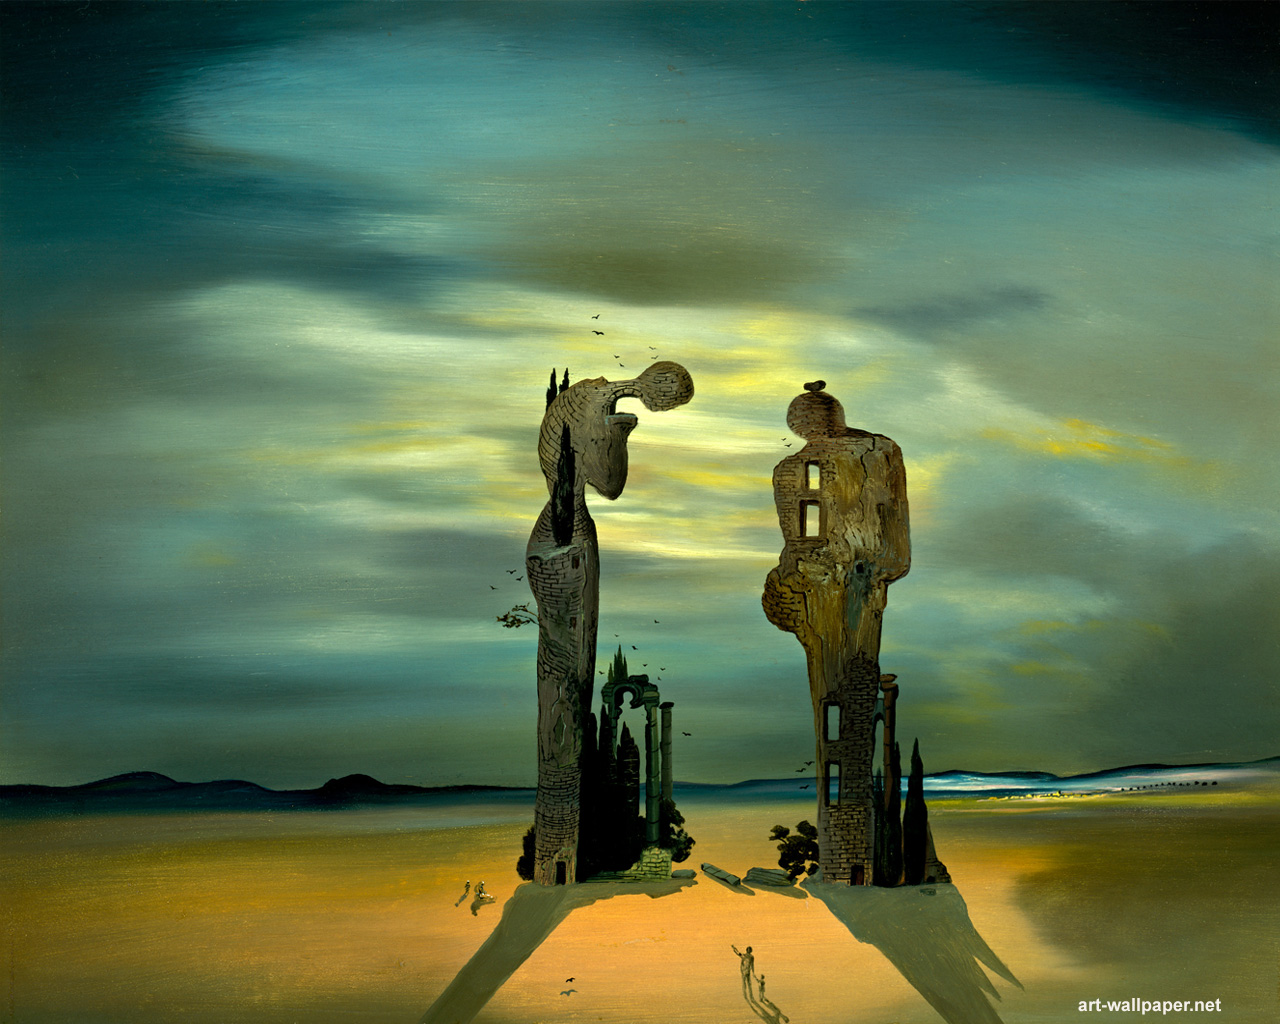 Beautiful Salvador Dali artwork for sale, Paintings and Prints The Pictures by salvador dali